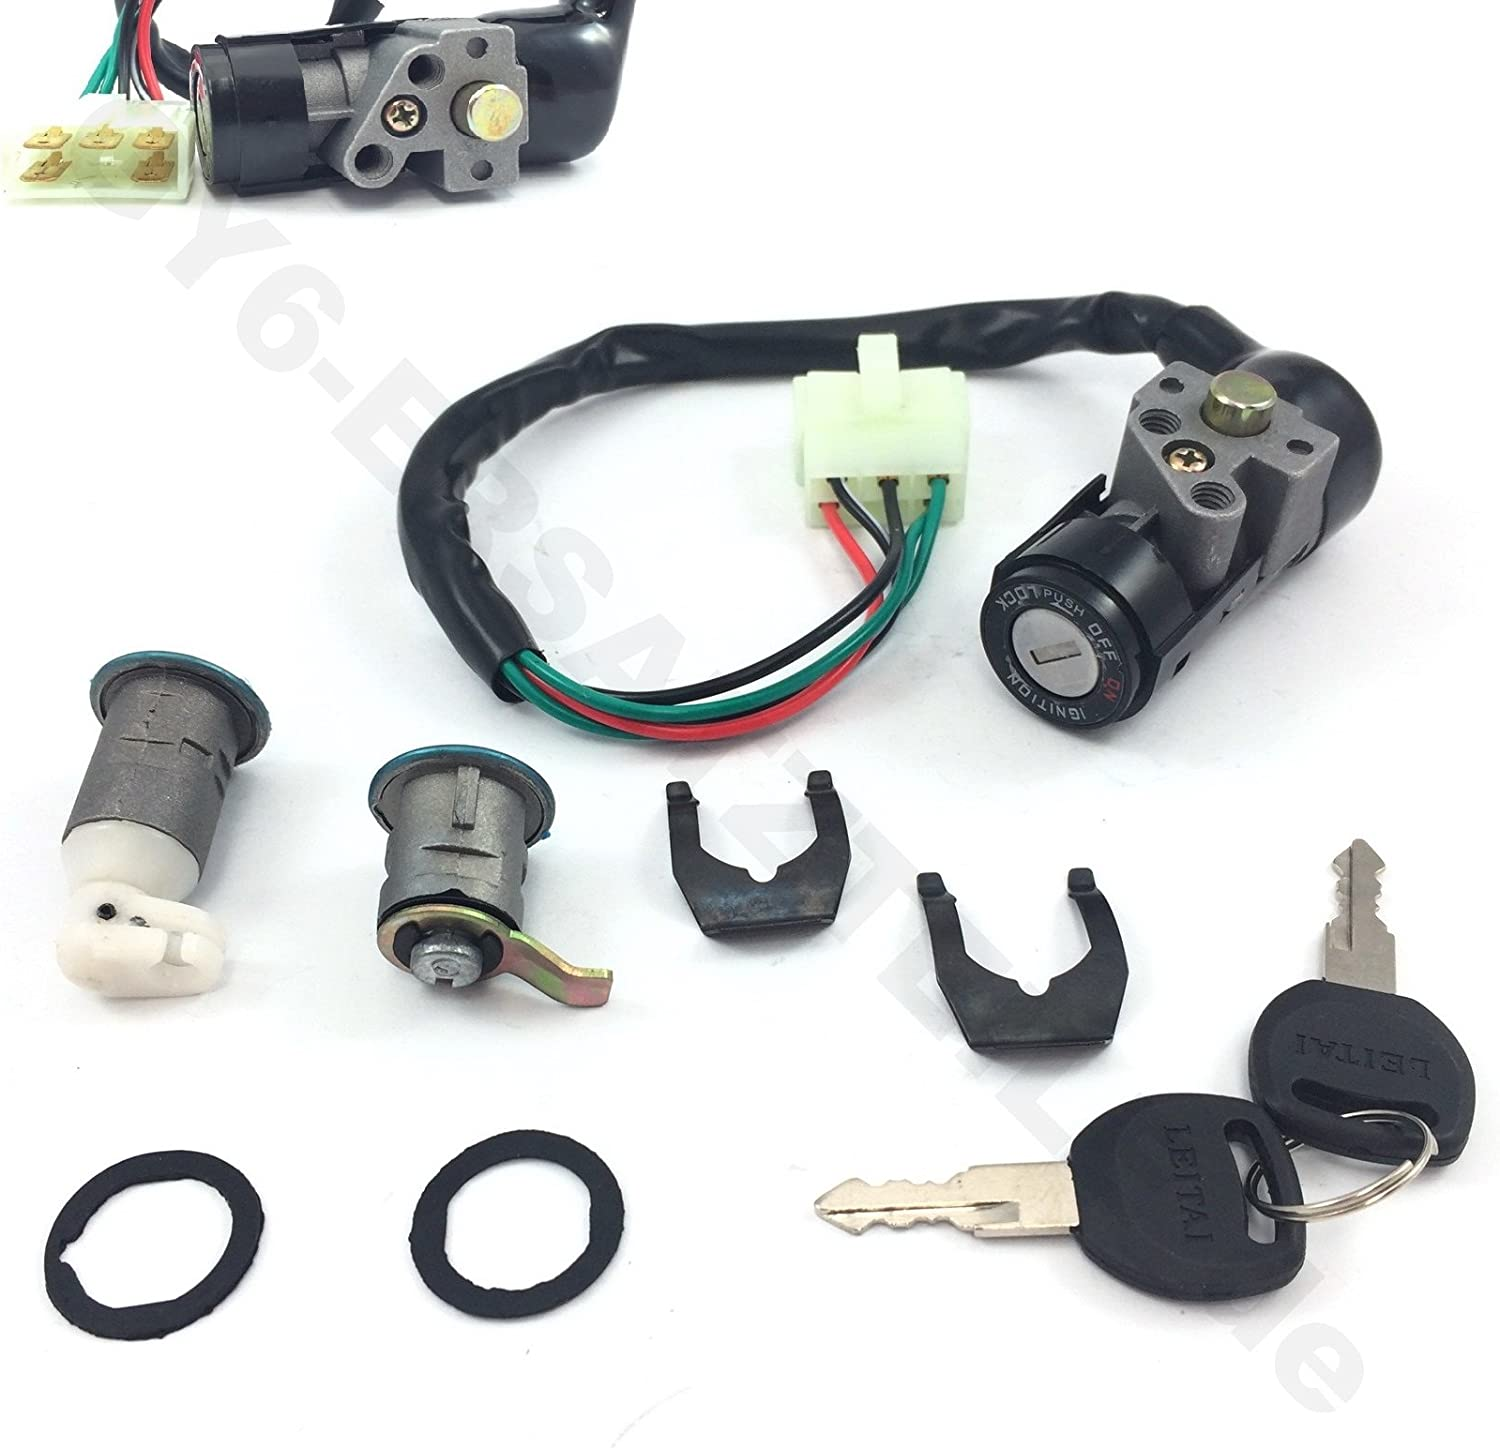 Scooter GY6 150cc VENTO style Colored Switches CHOOSE 1 COLOR